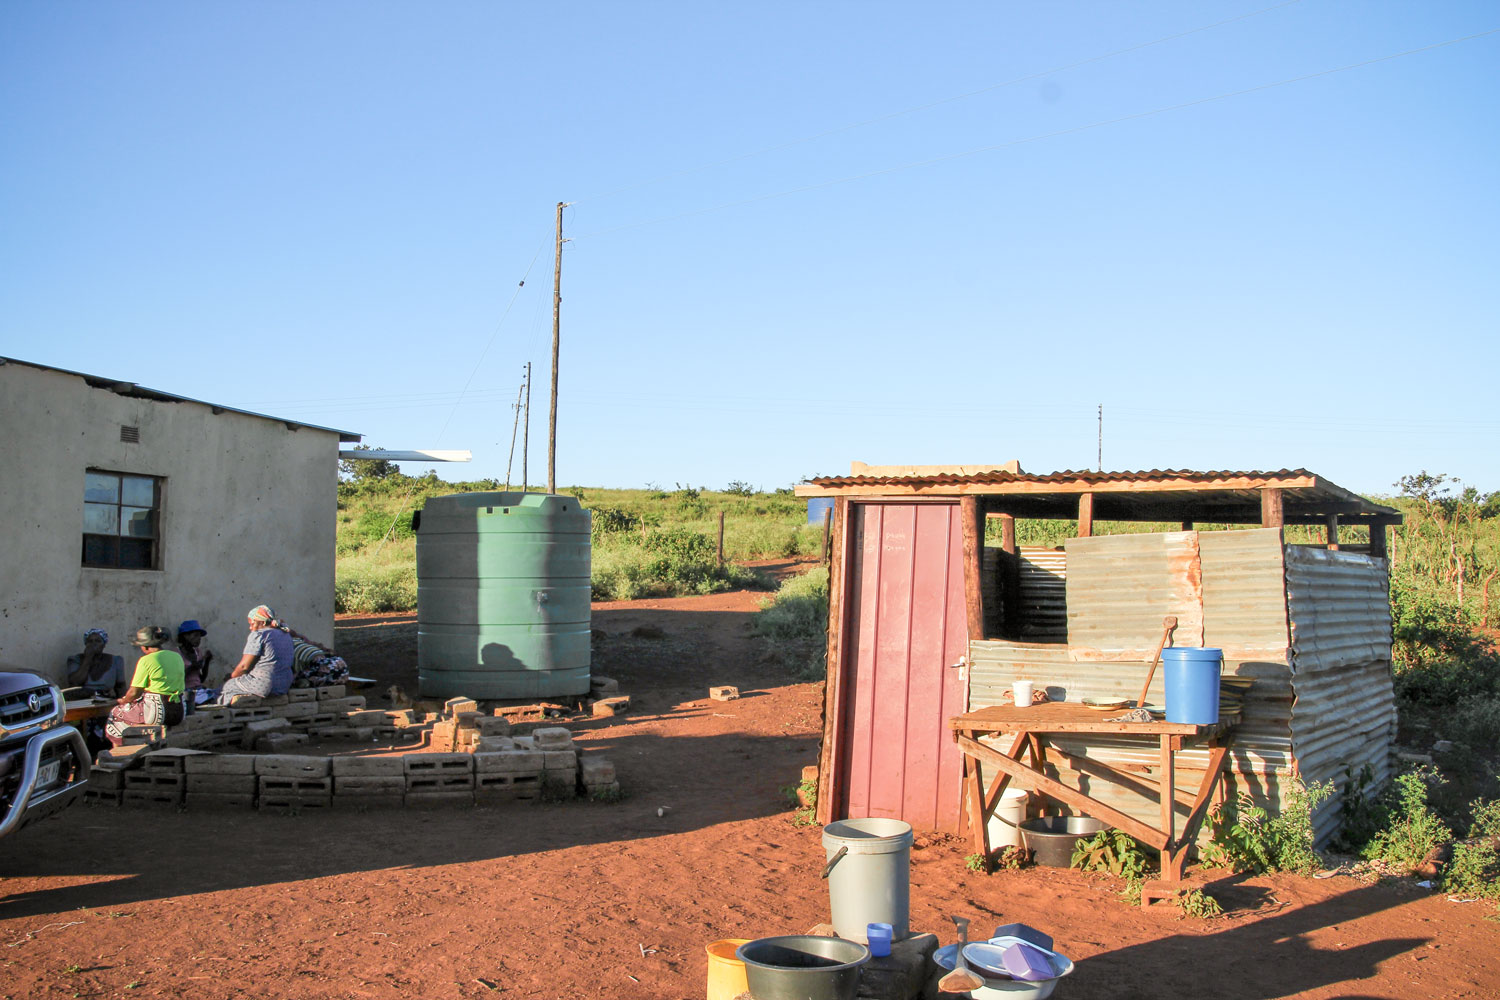 The Care Point has a water tank that is used to store water.